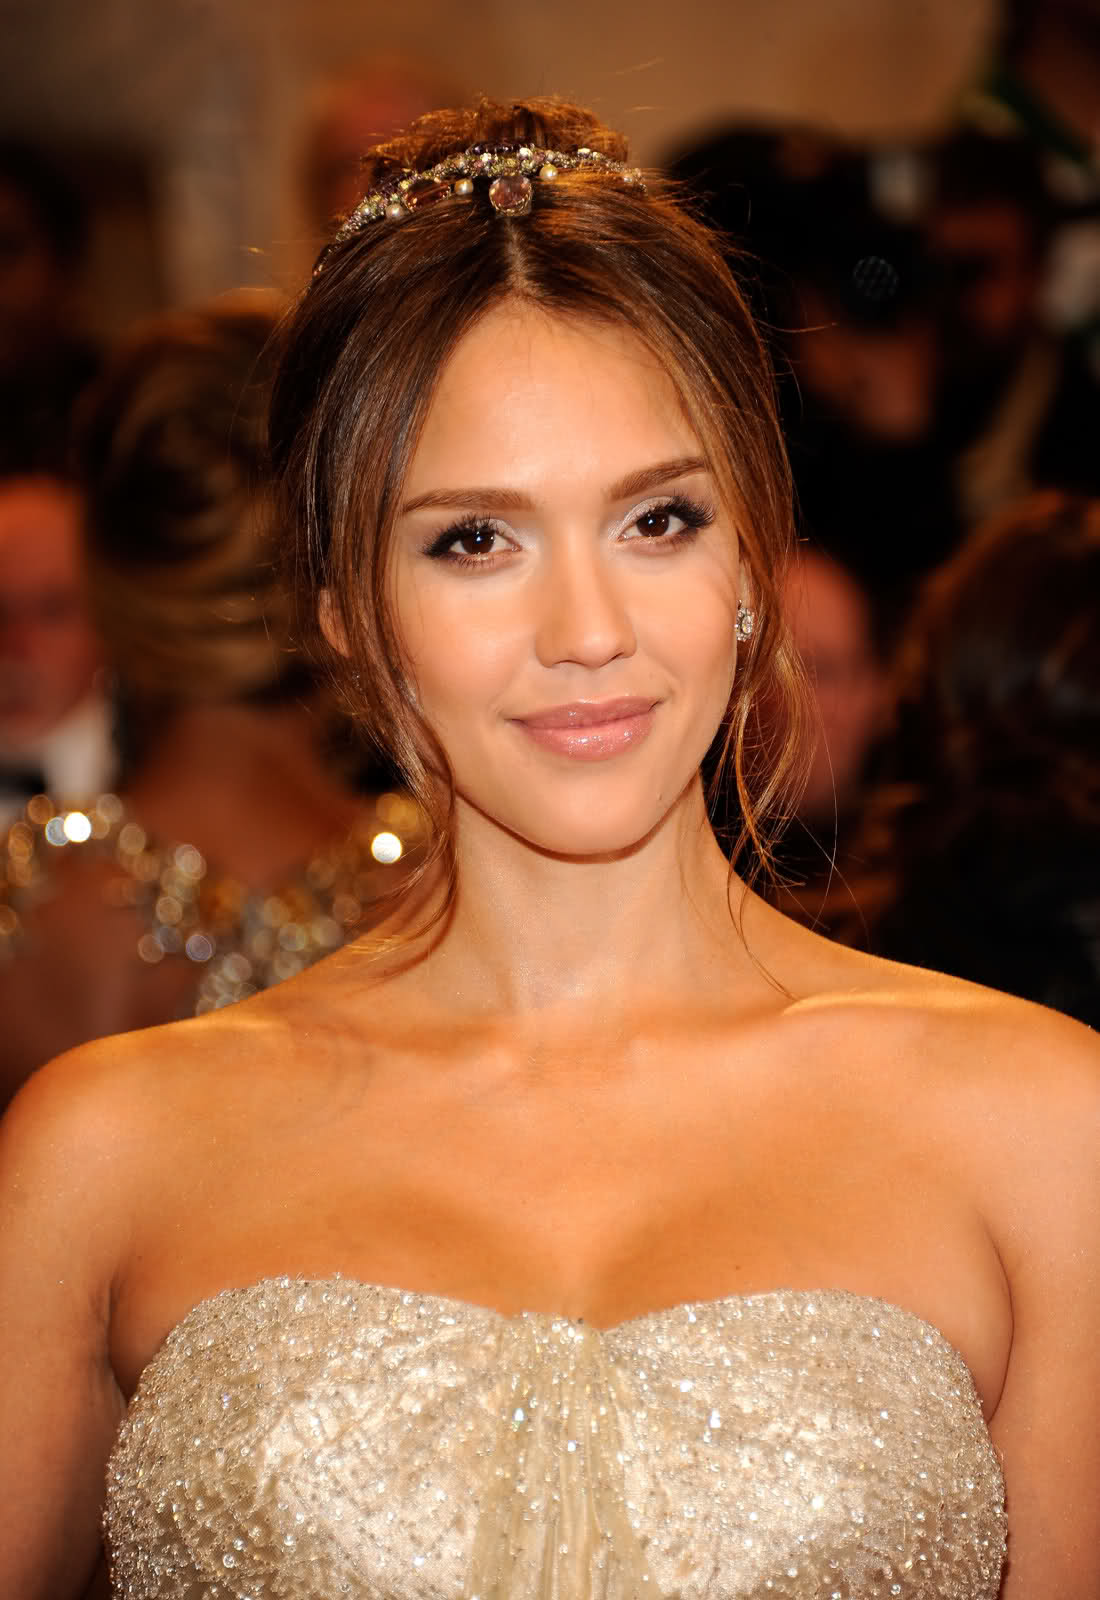 Jessica Alba Updo Hairstyles Hairstyle Review And Pictures Glammer Girl Jessica Alba